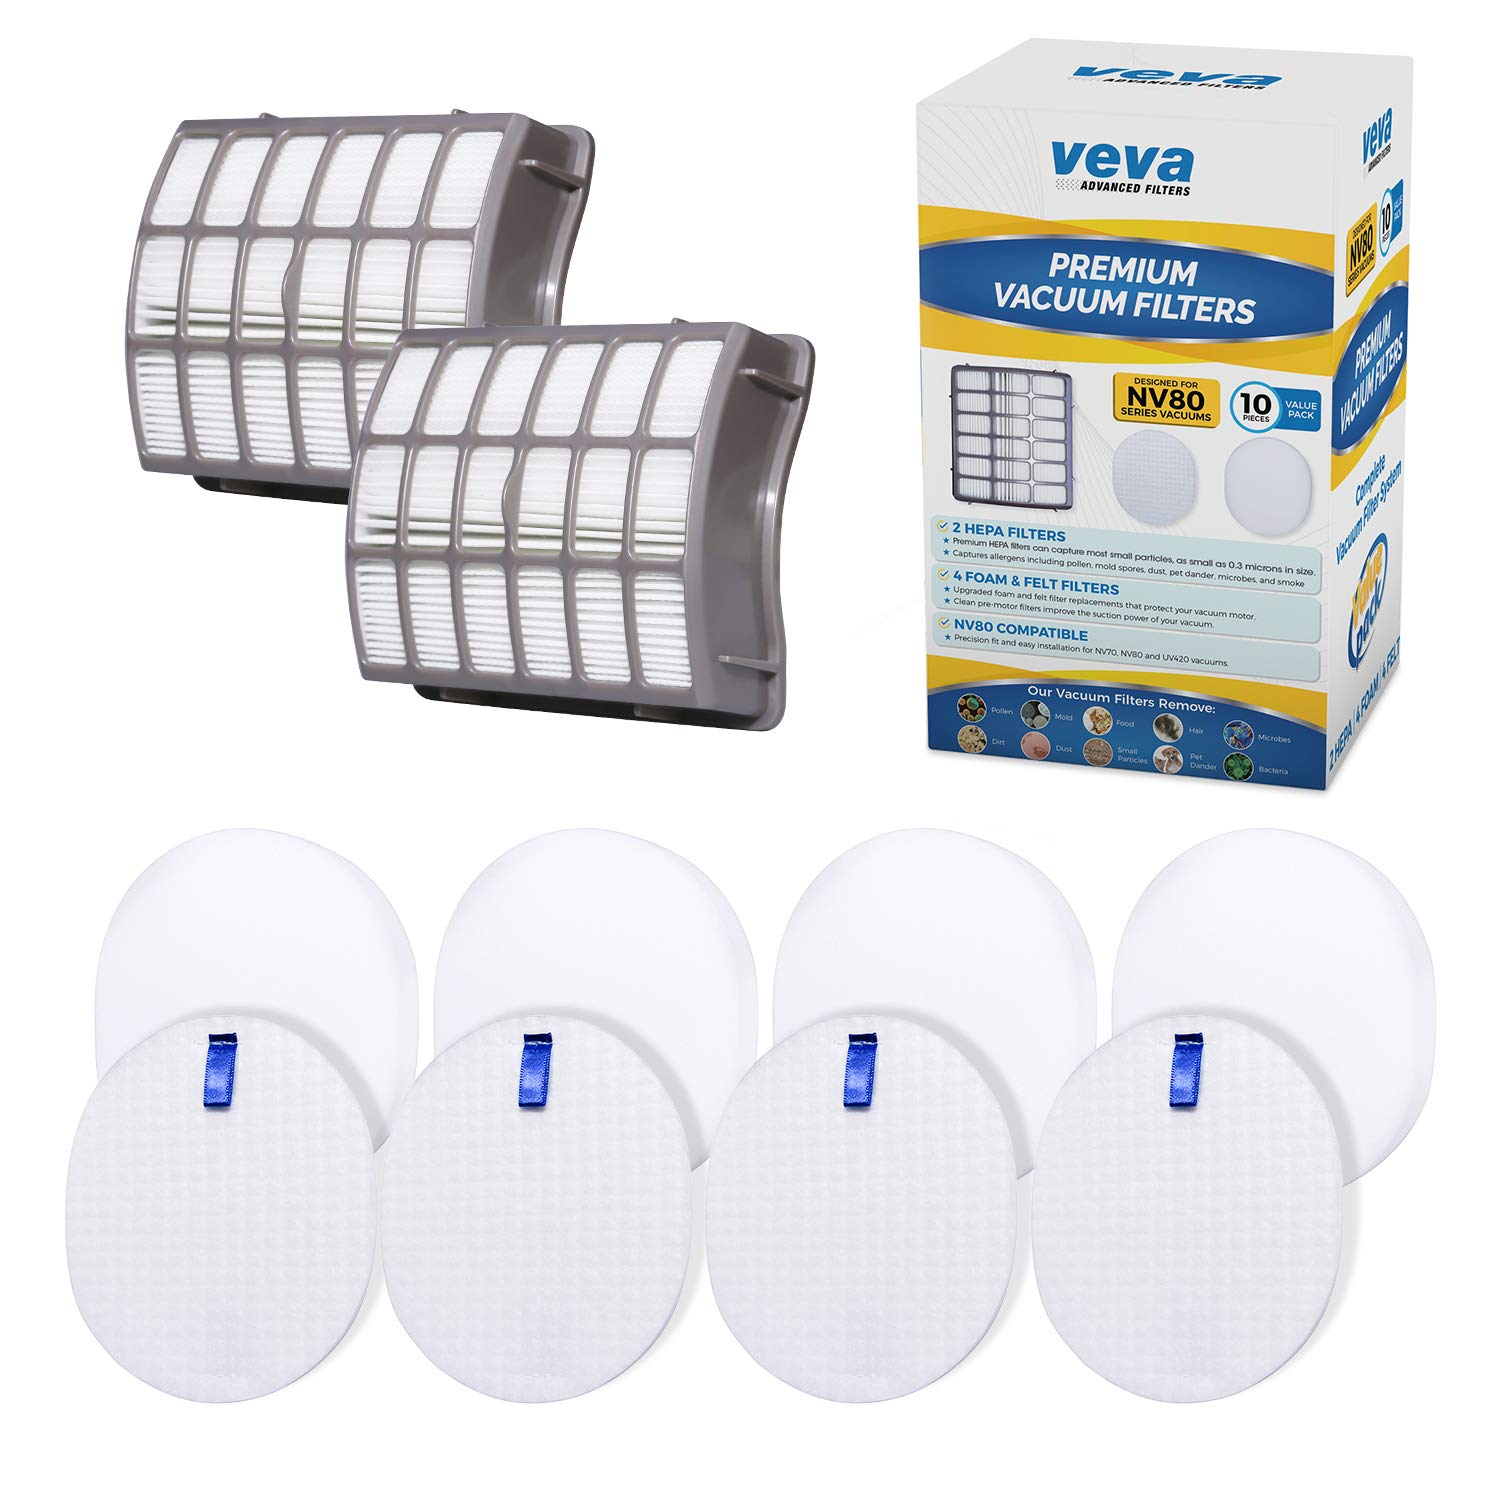 VEVA Complete Premium Vacuum Filter Set Including 2 HEPA, 4 Foam, 4 Felt Filters 10 Pieces Total for Shark Navigator Rotator Professional Upright Model NV70, NV71, NV80, NVC80C, NV90, NV95 & UV420